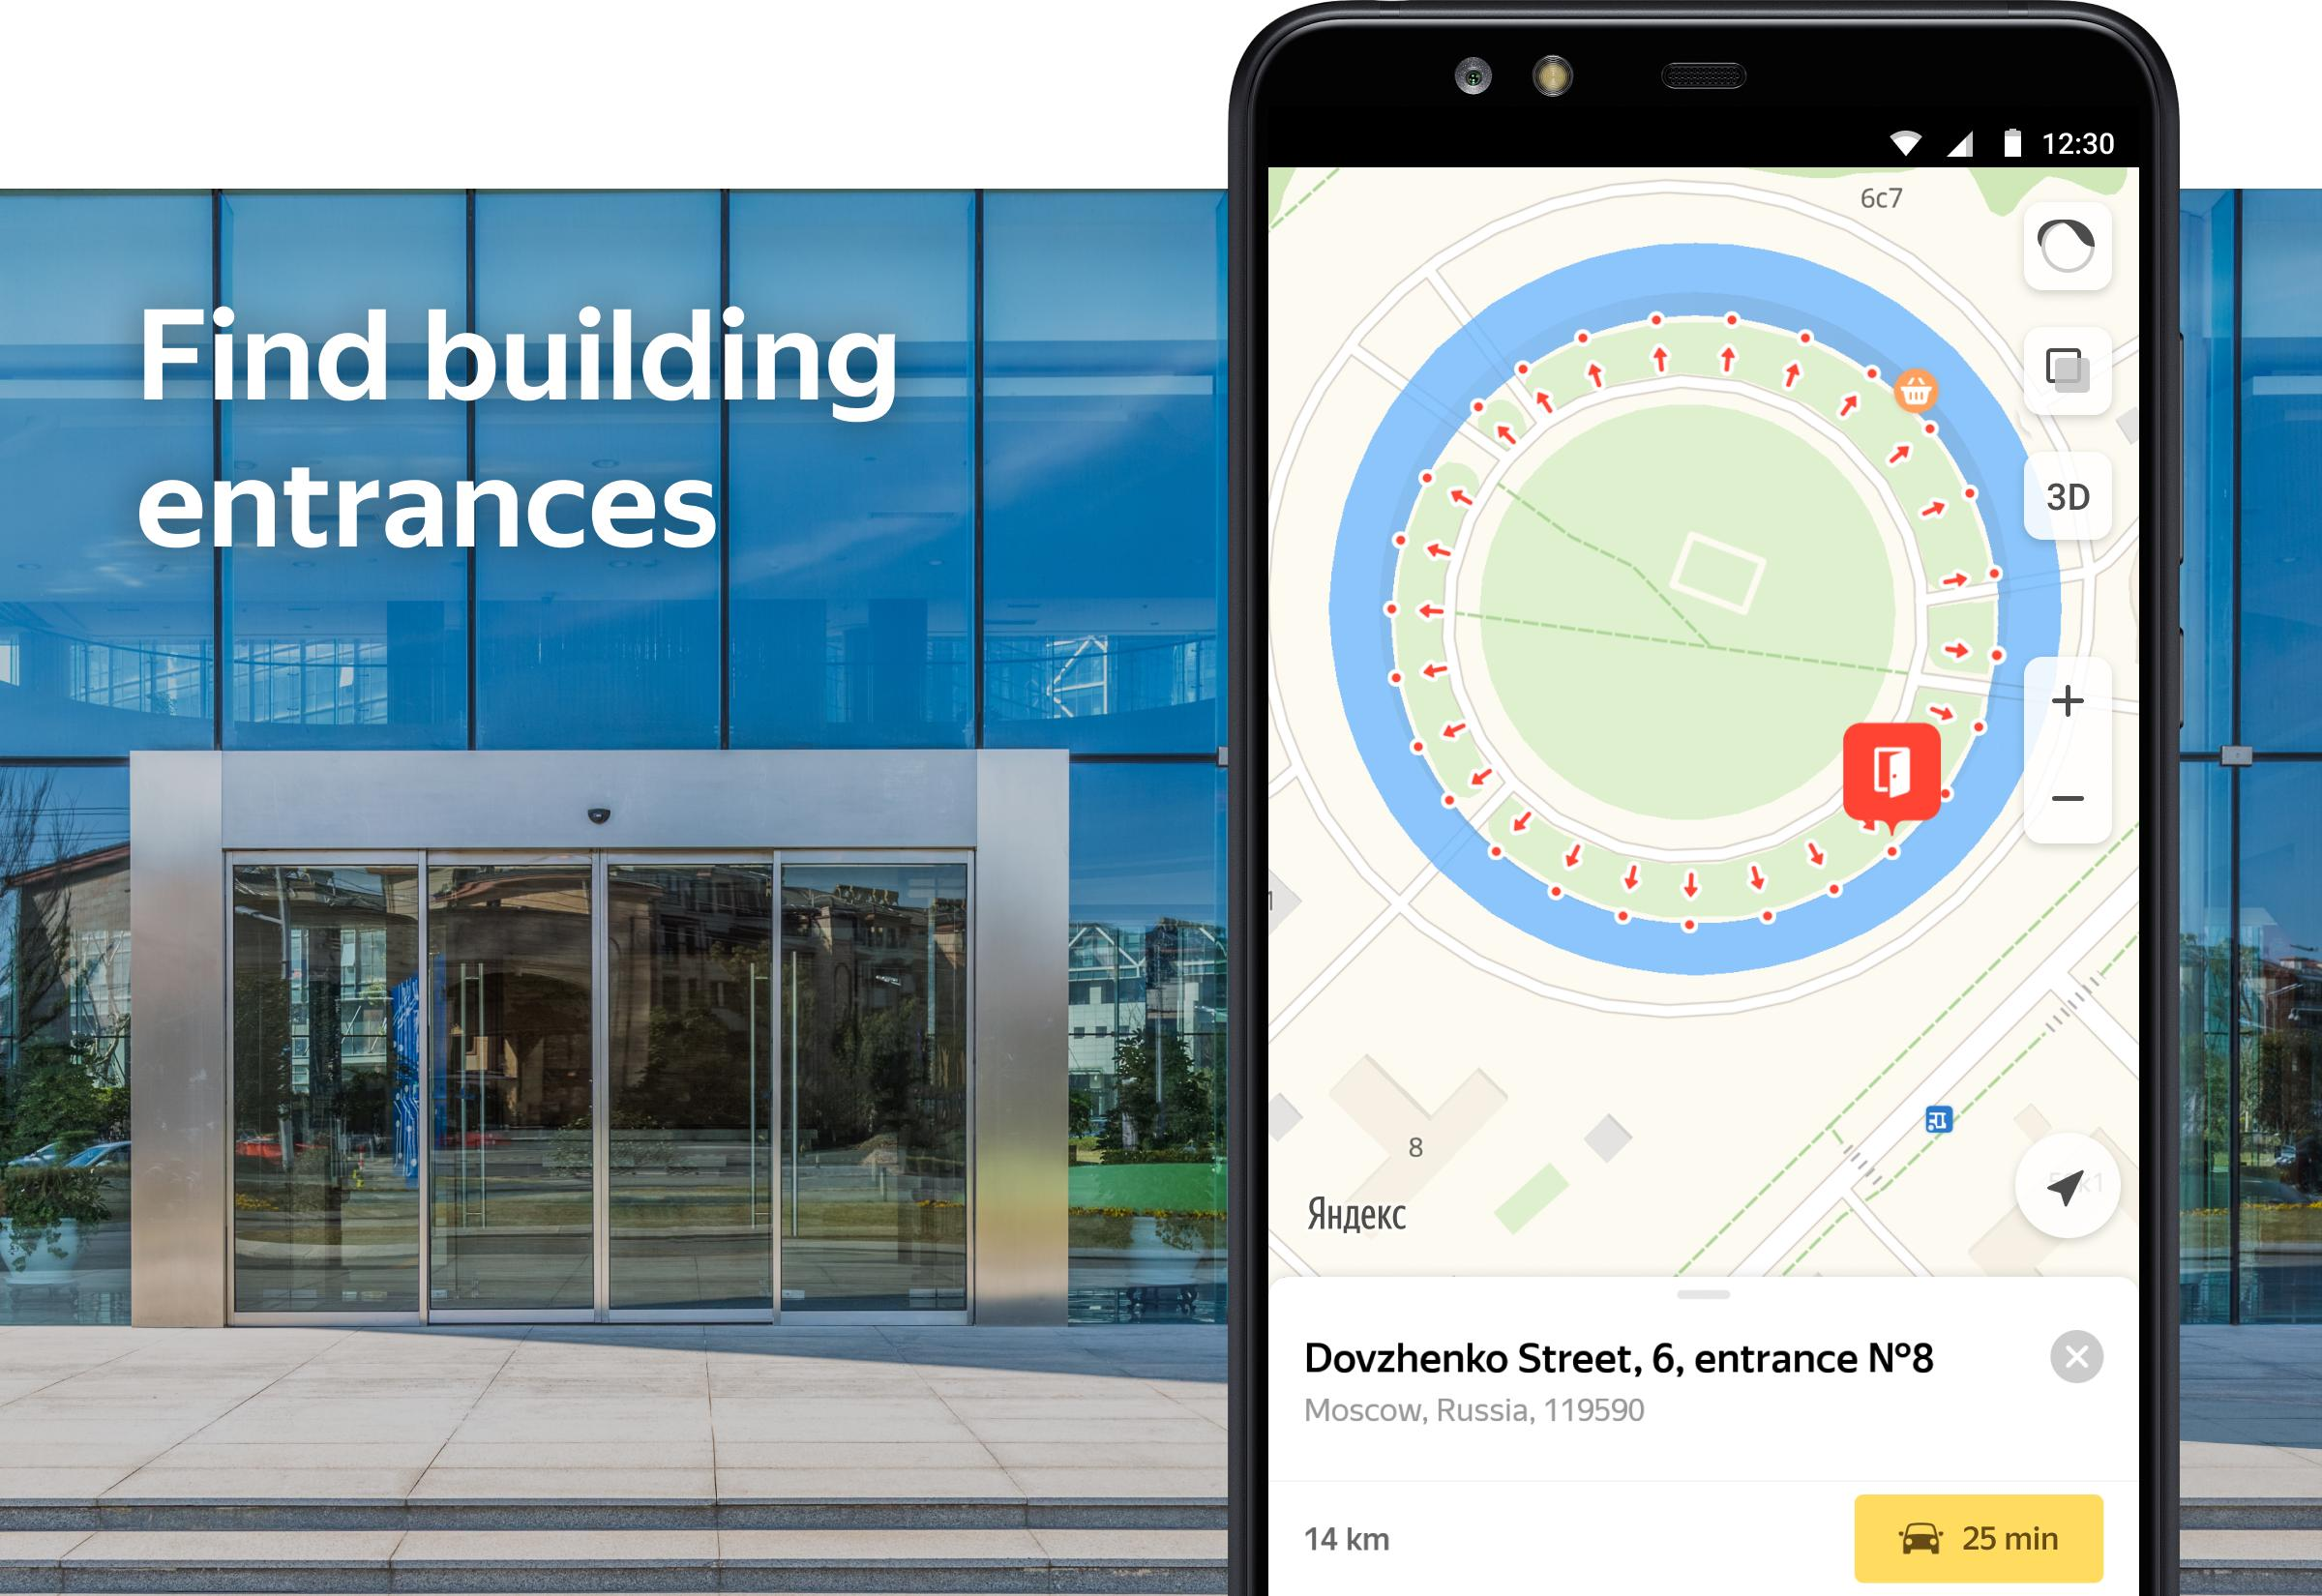 Yandex.Maps for Android - APK Download on iphone android, google maps android, market android, apps android, plex android, gps android,